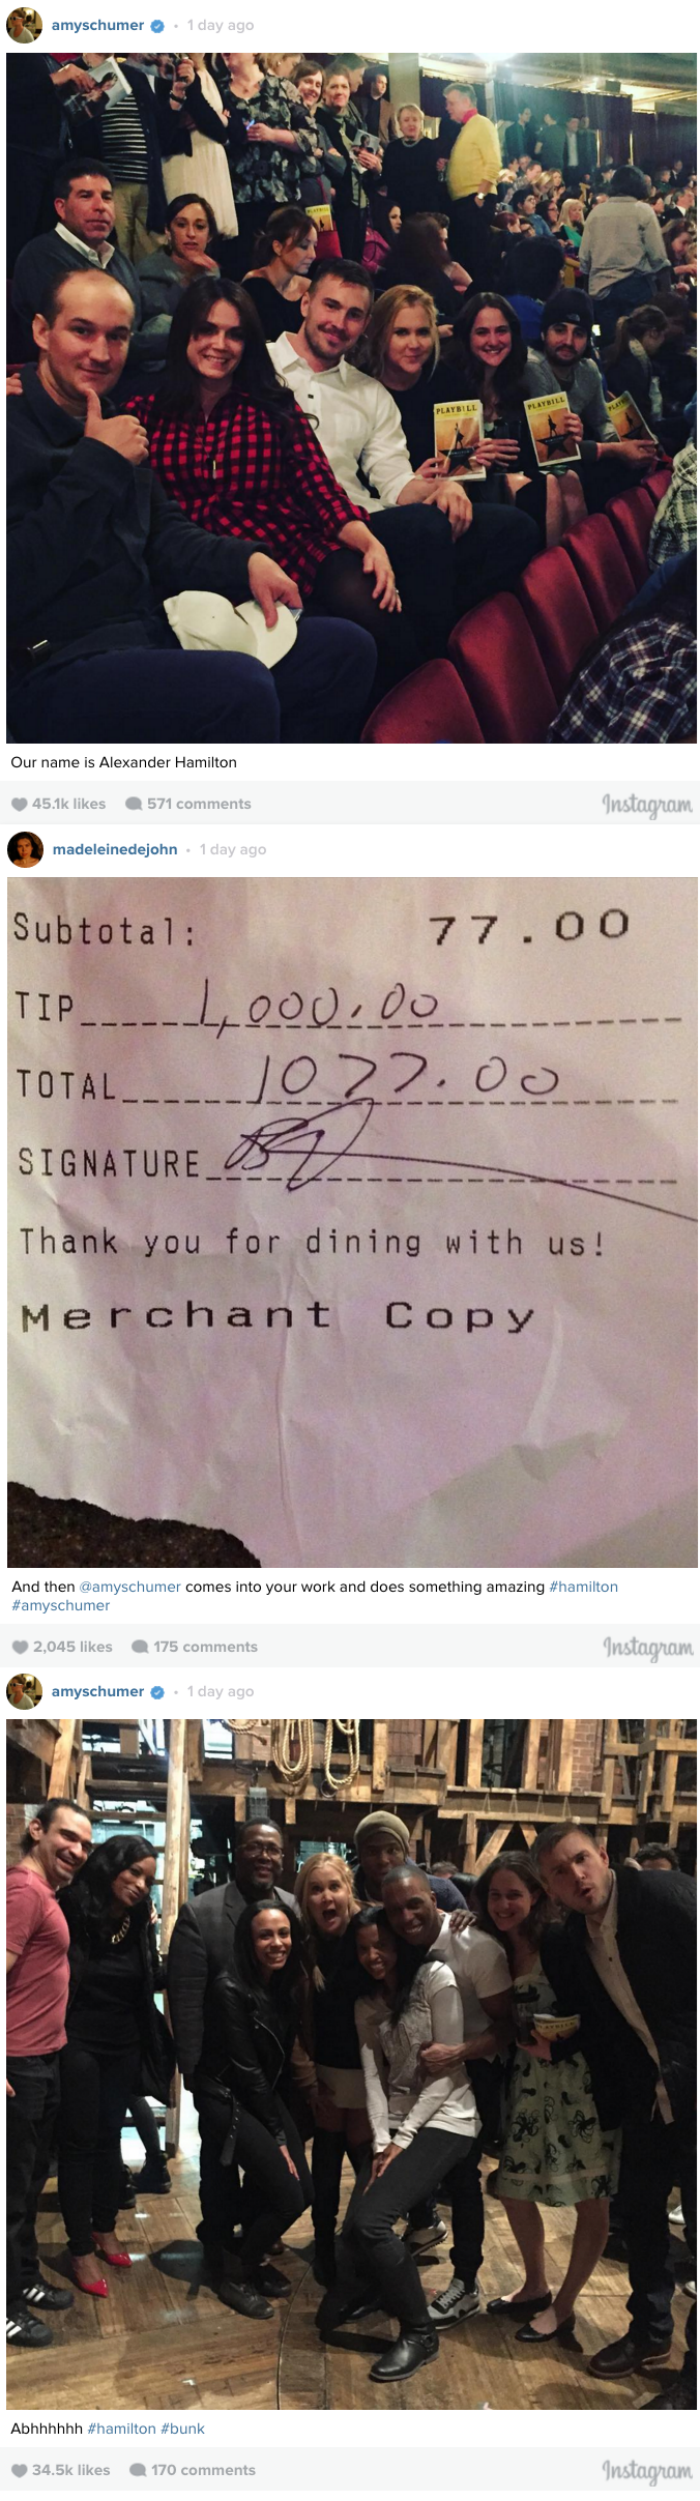 win Amy Schumer leaves Hamilton bartender a great tip